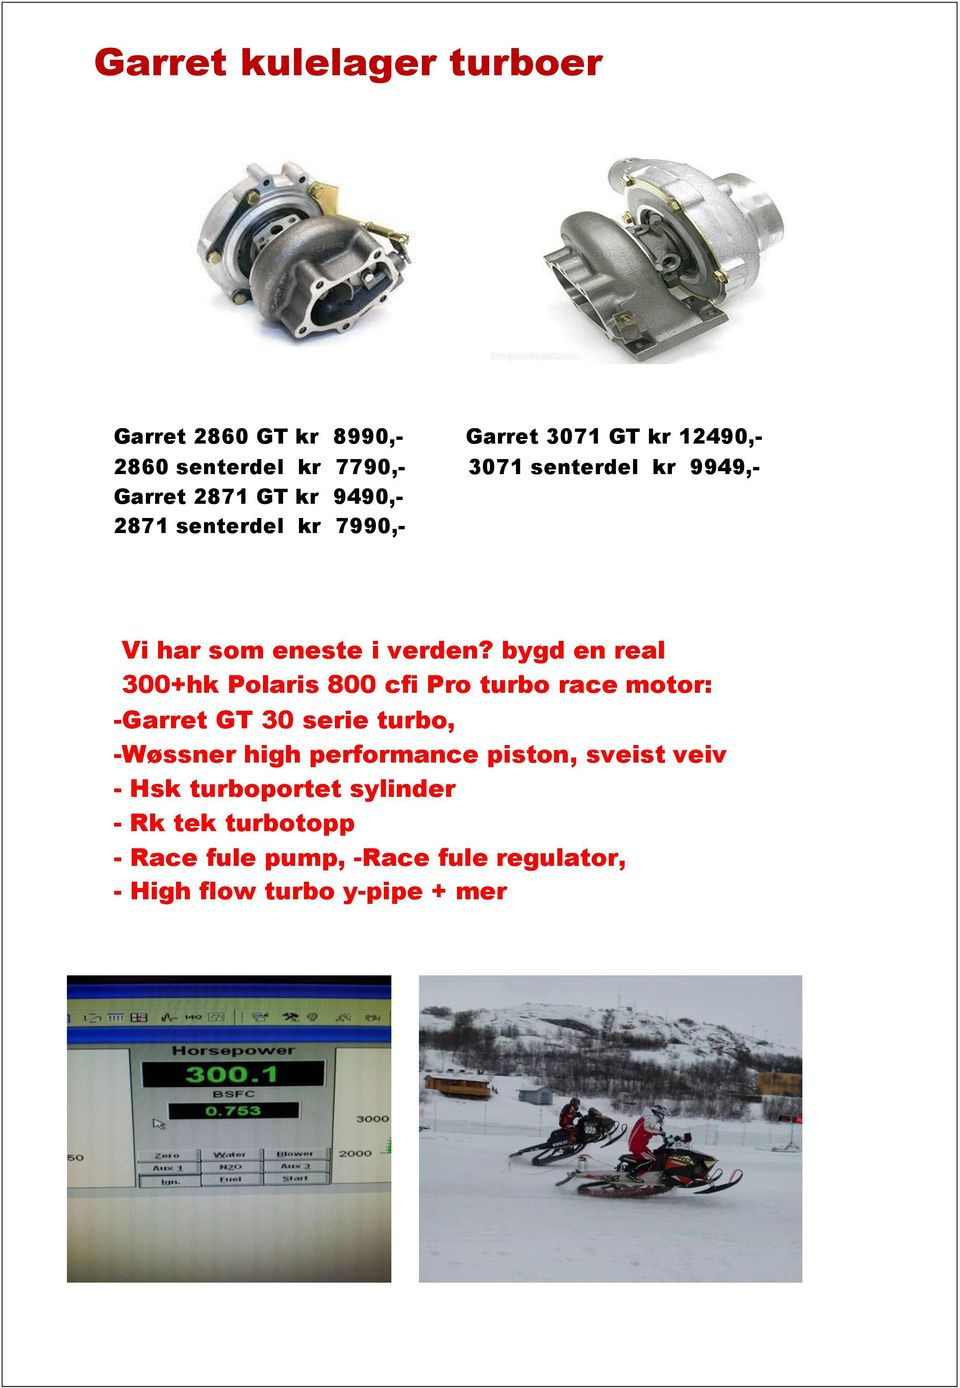 bygd en real 300+hk Polaris 800 cfi Pro turbo race motor: -Garret GT 30 serie turbo, -Wøssner high performance